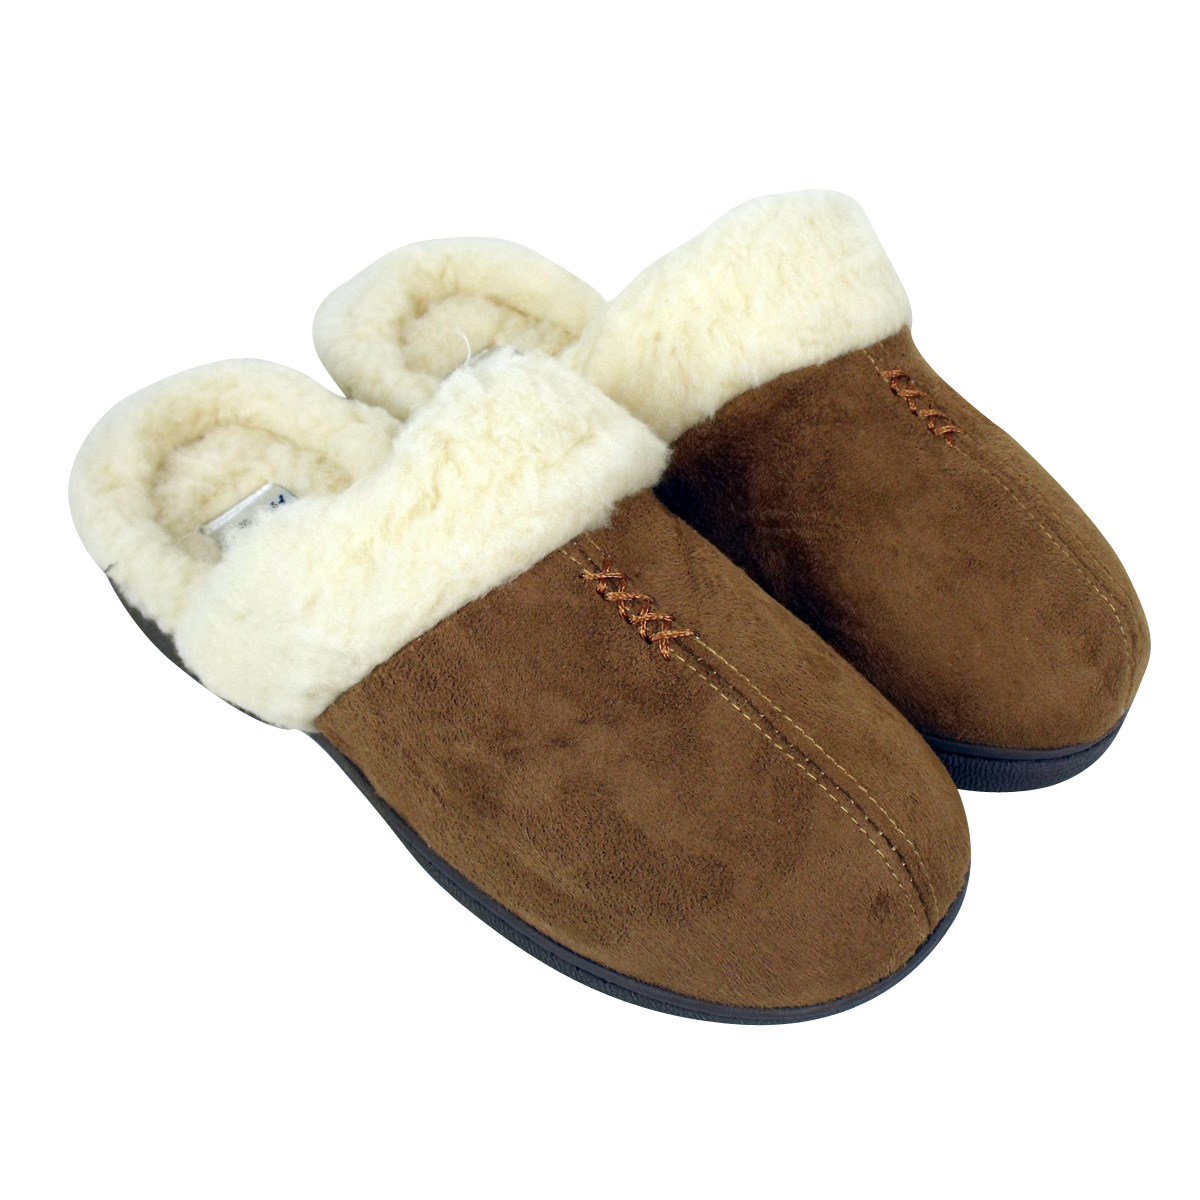 Treat your feet with a pair of women's slippers. From super-soft materials like sheepskin and suede to playful details such as embroidery and pom-poms, these are styles you'll look forward to slipping into.